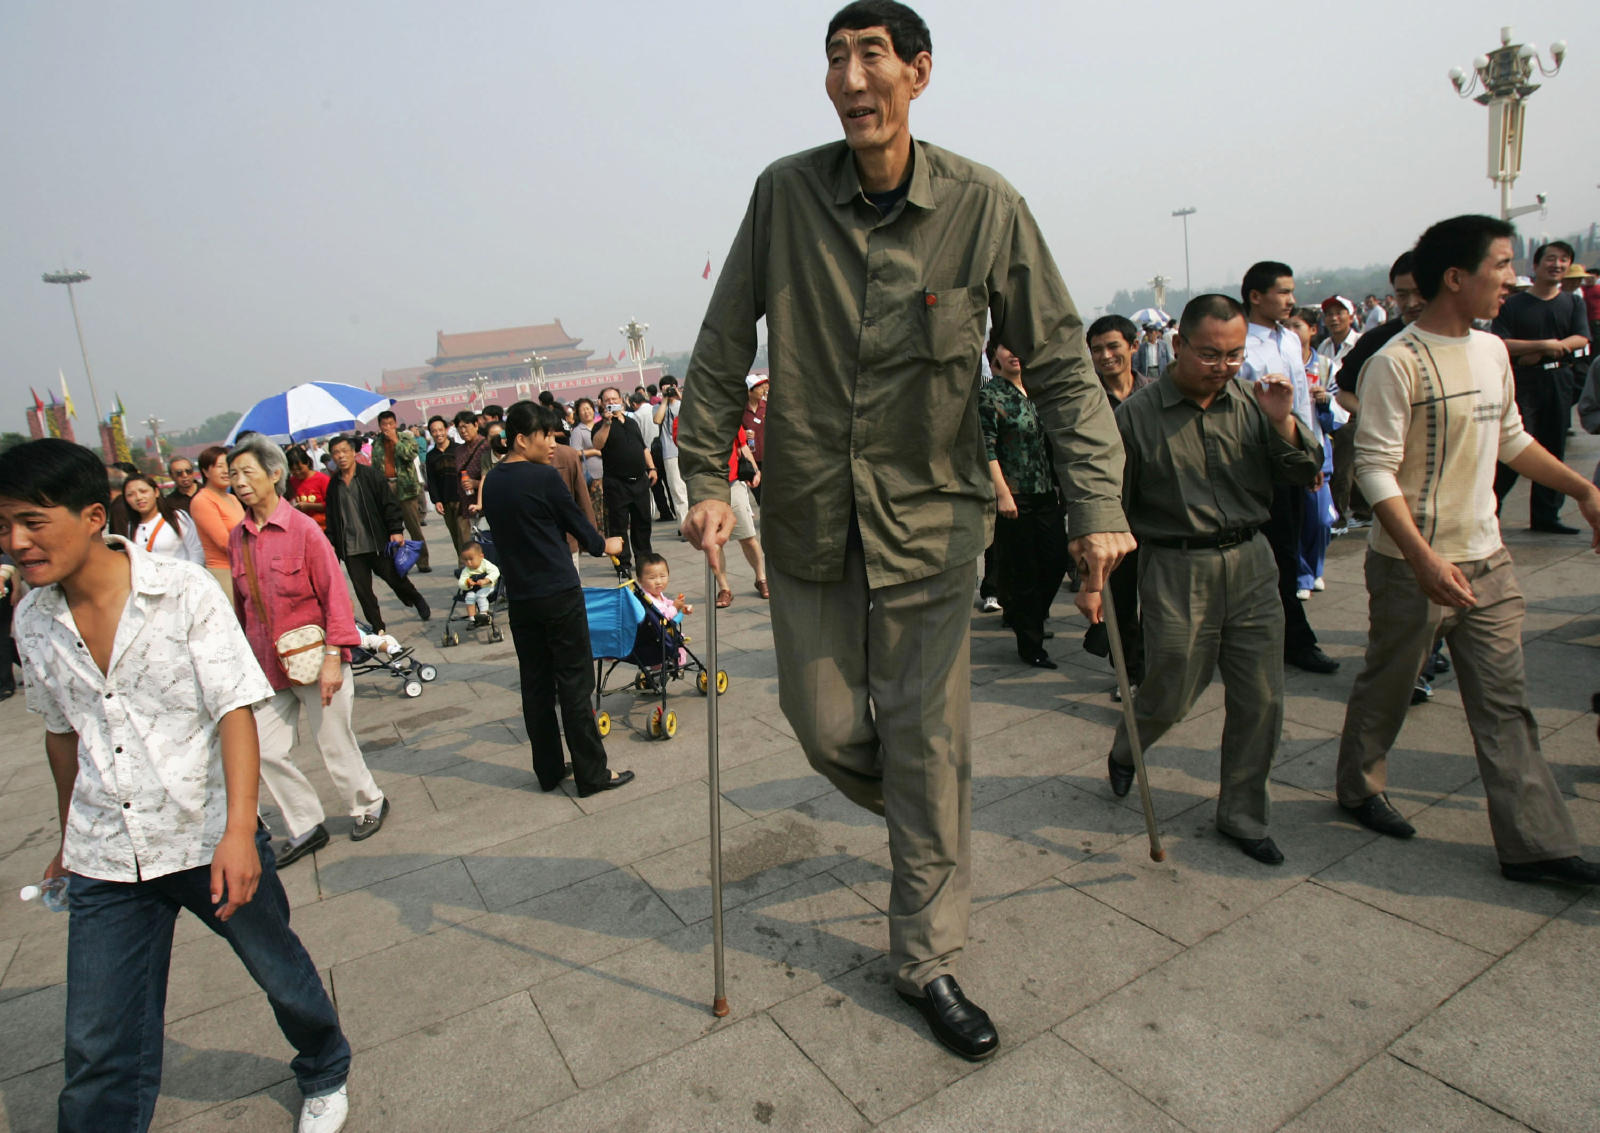 10 Best Cars For Tall People No More Cramming: Amazing Pics: World's Tallest Man Ever Seen